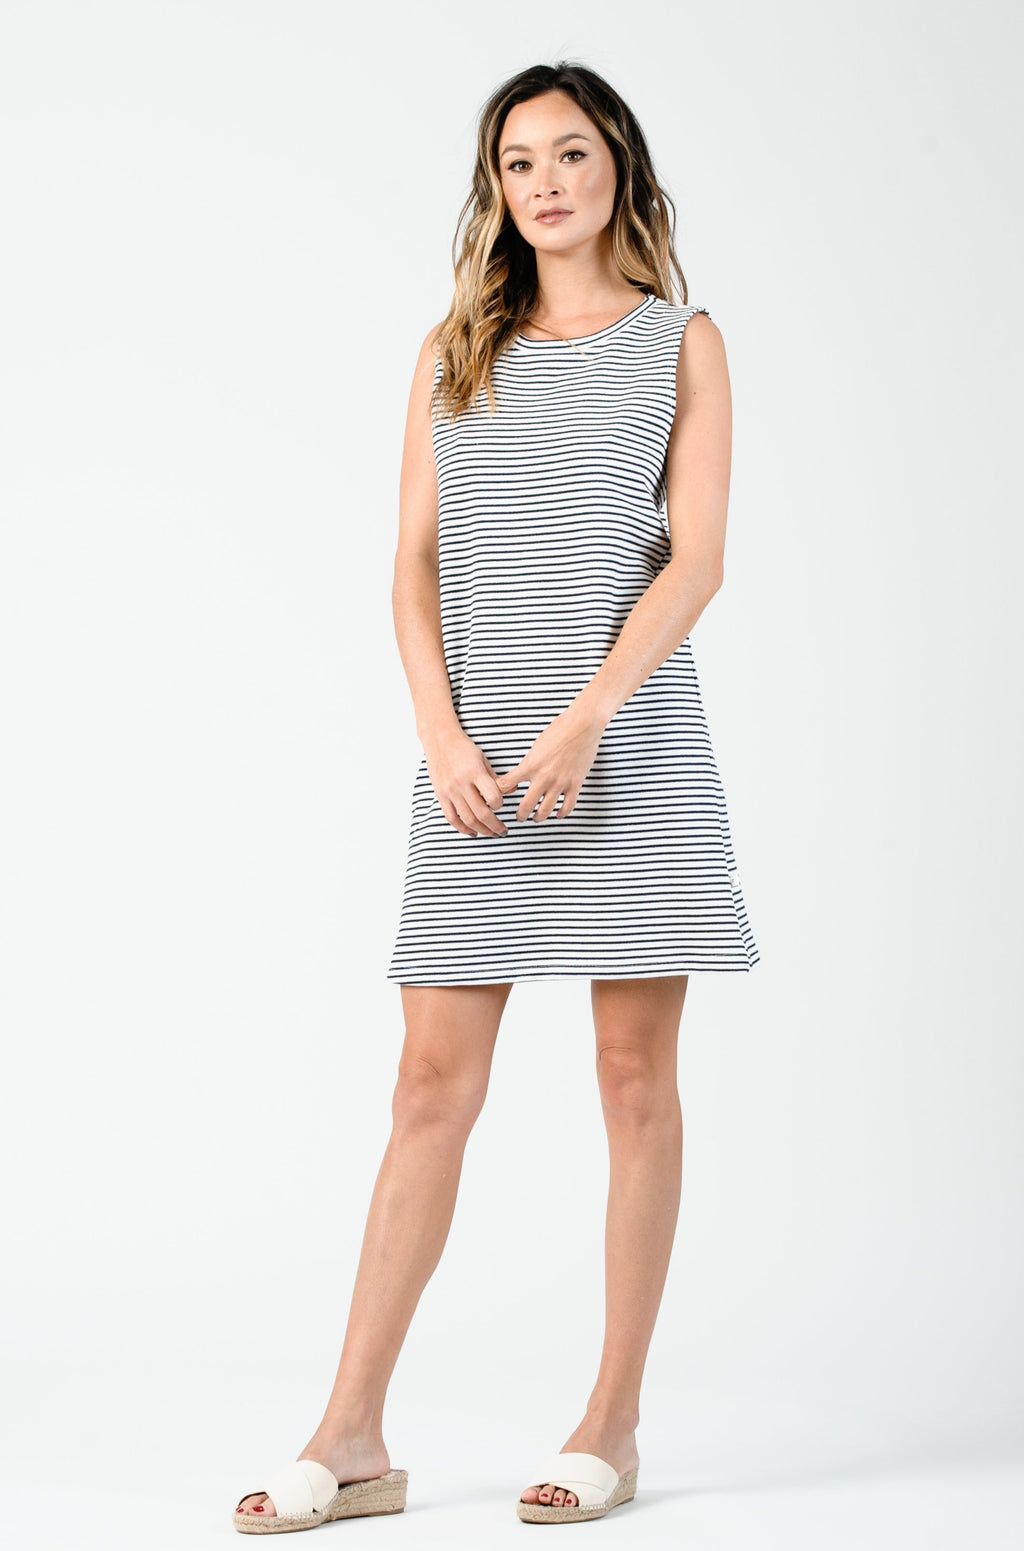 SELAH SLEEVELESS SHIFT DRESS | WHITE NAVY STRIPE